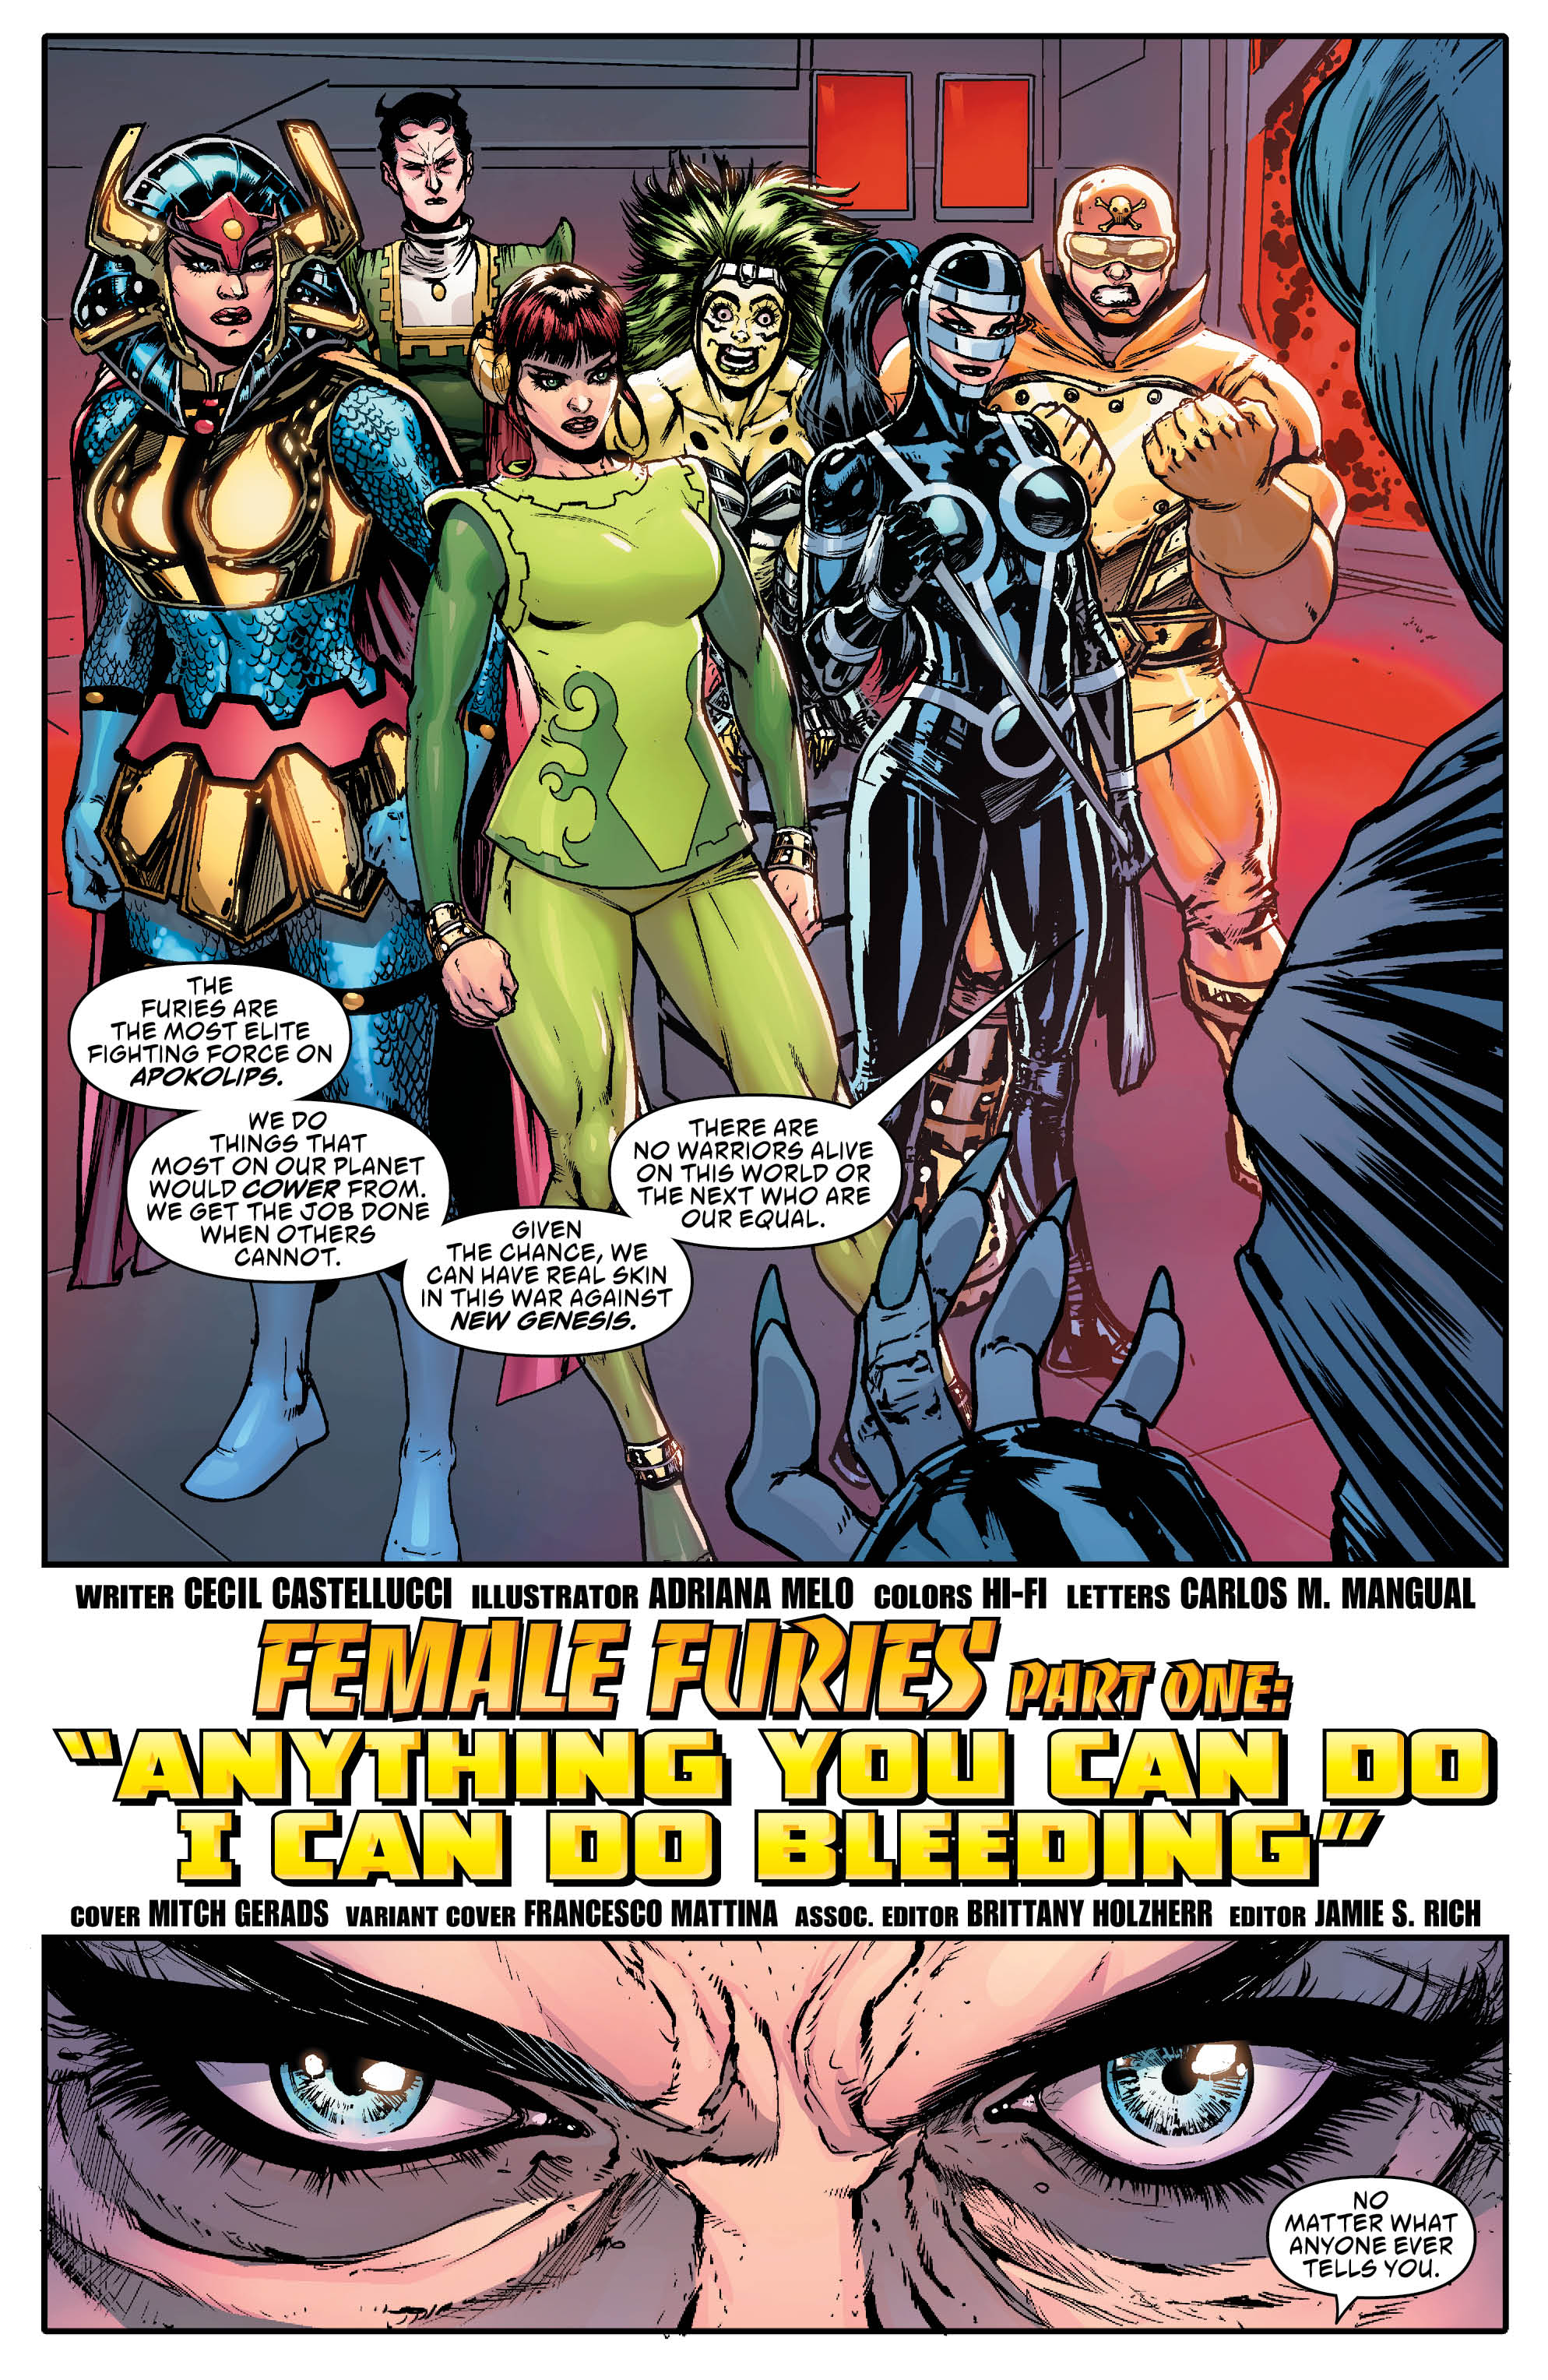 DC ROUND-UP: FEMALE FURIES #1 Argues the Male Gaze is the